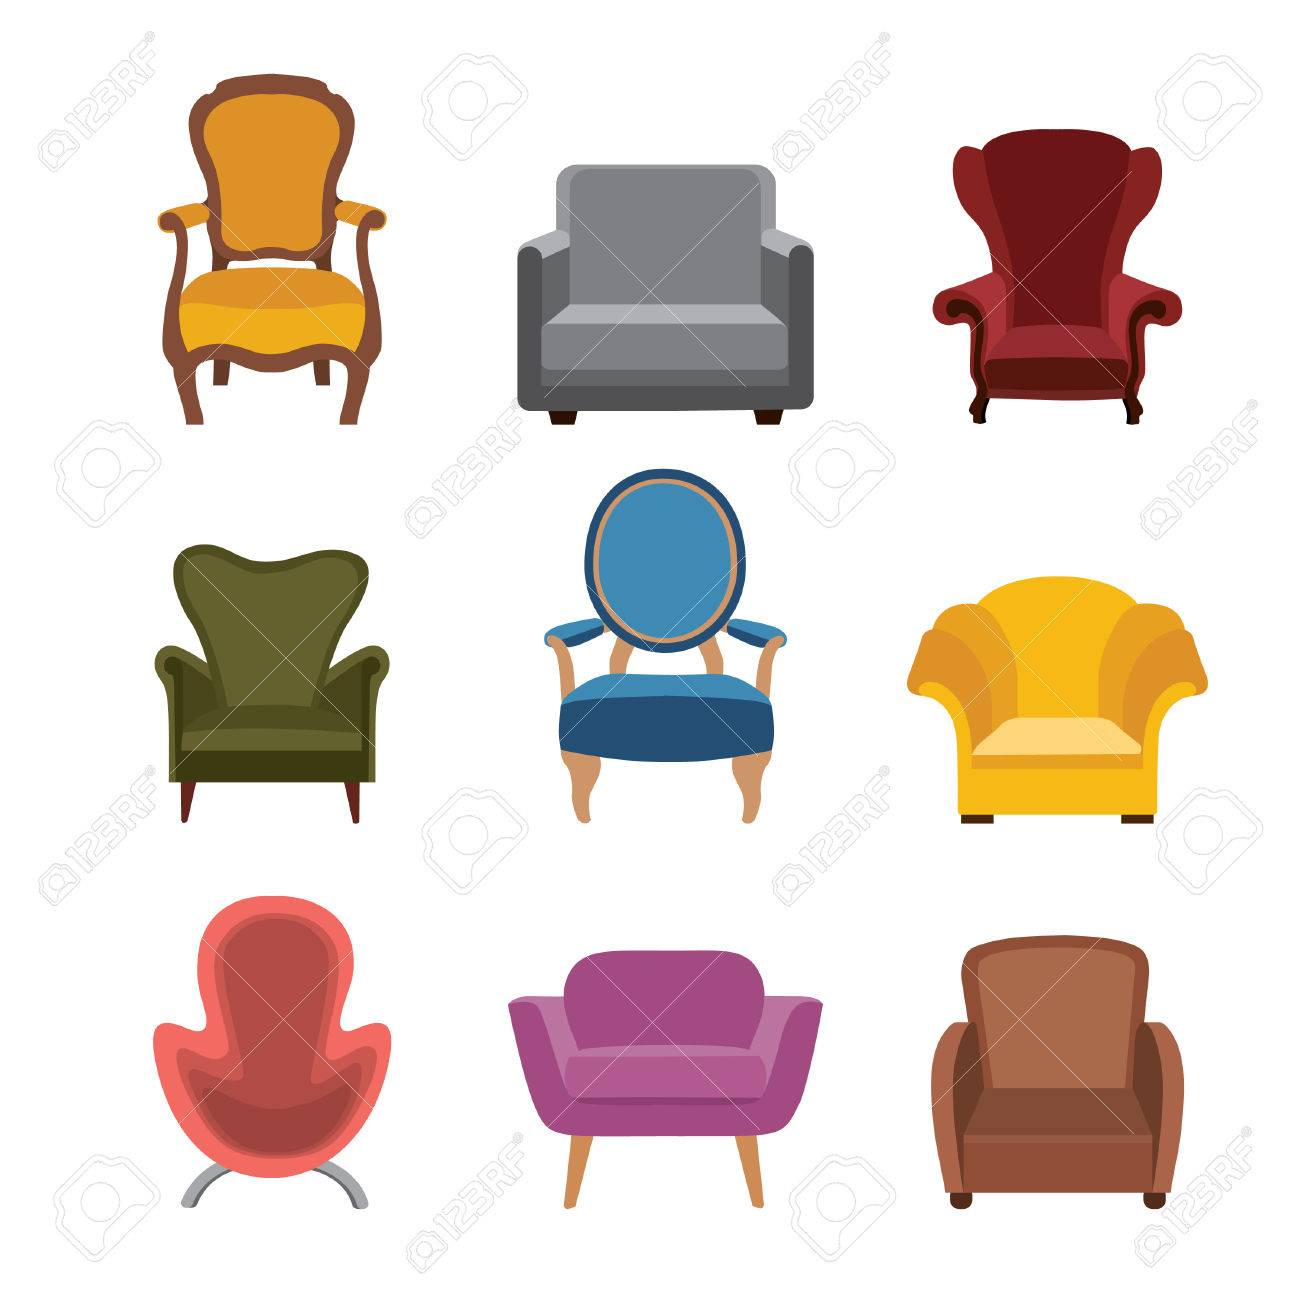 Chairs And Armchairs Icons Set. Furniture Collection Of Different ...